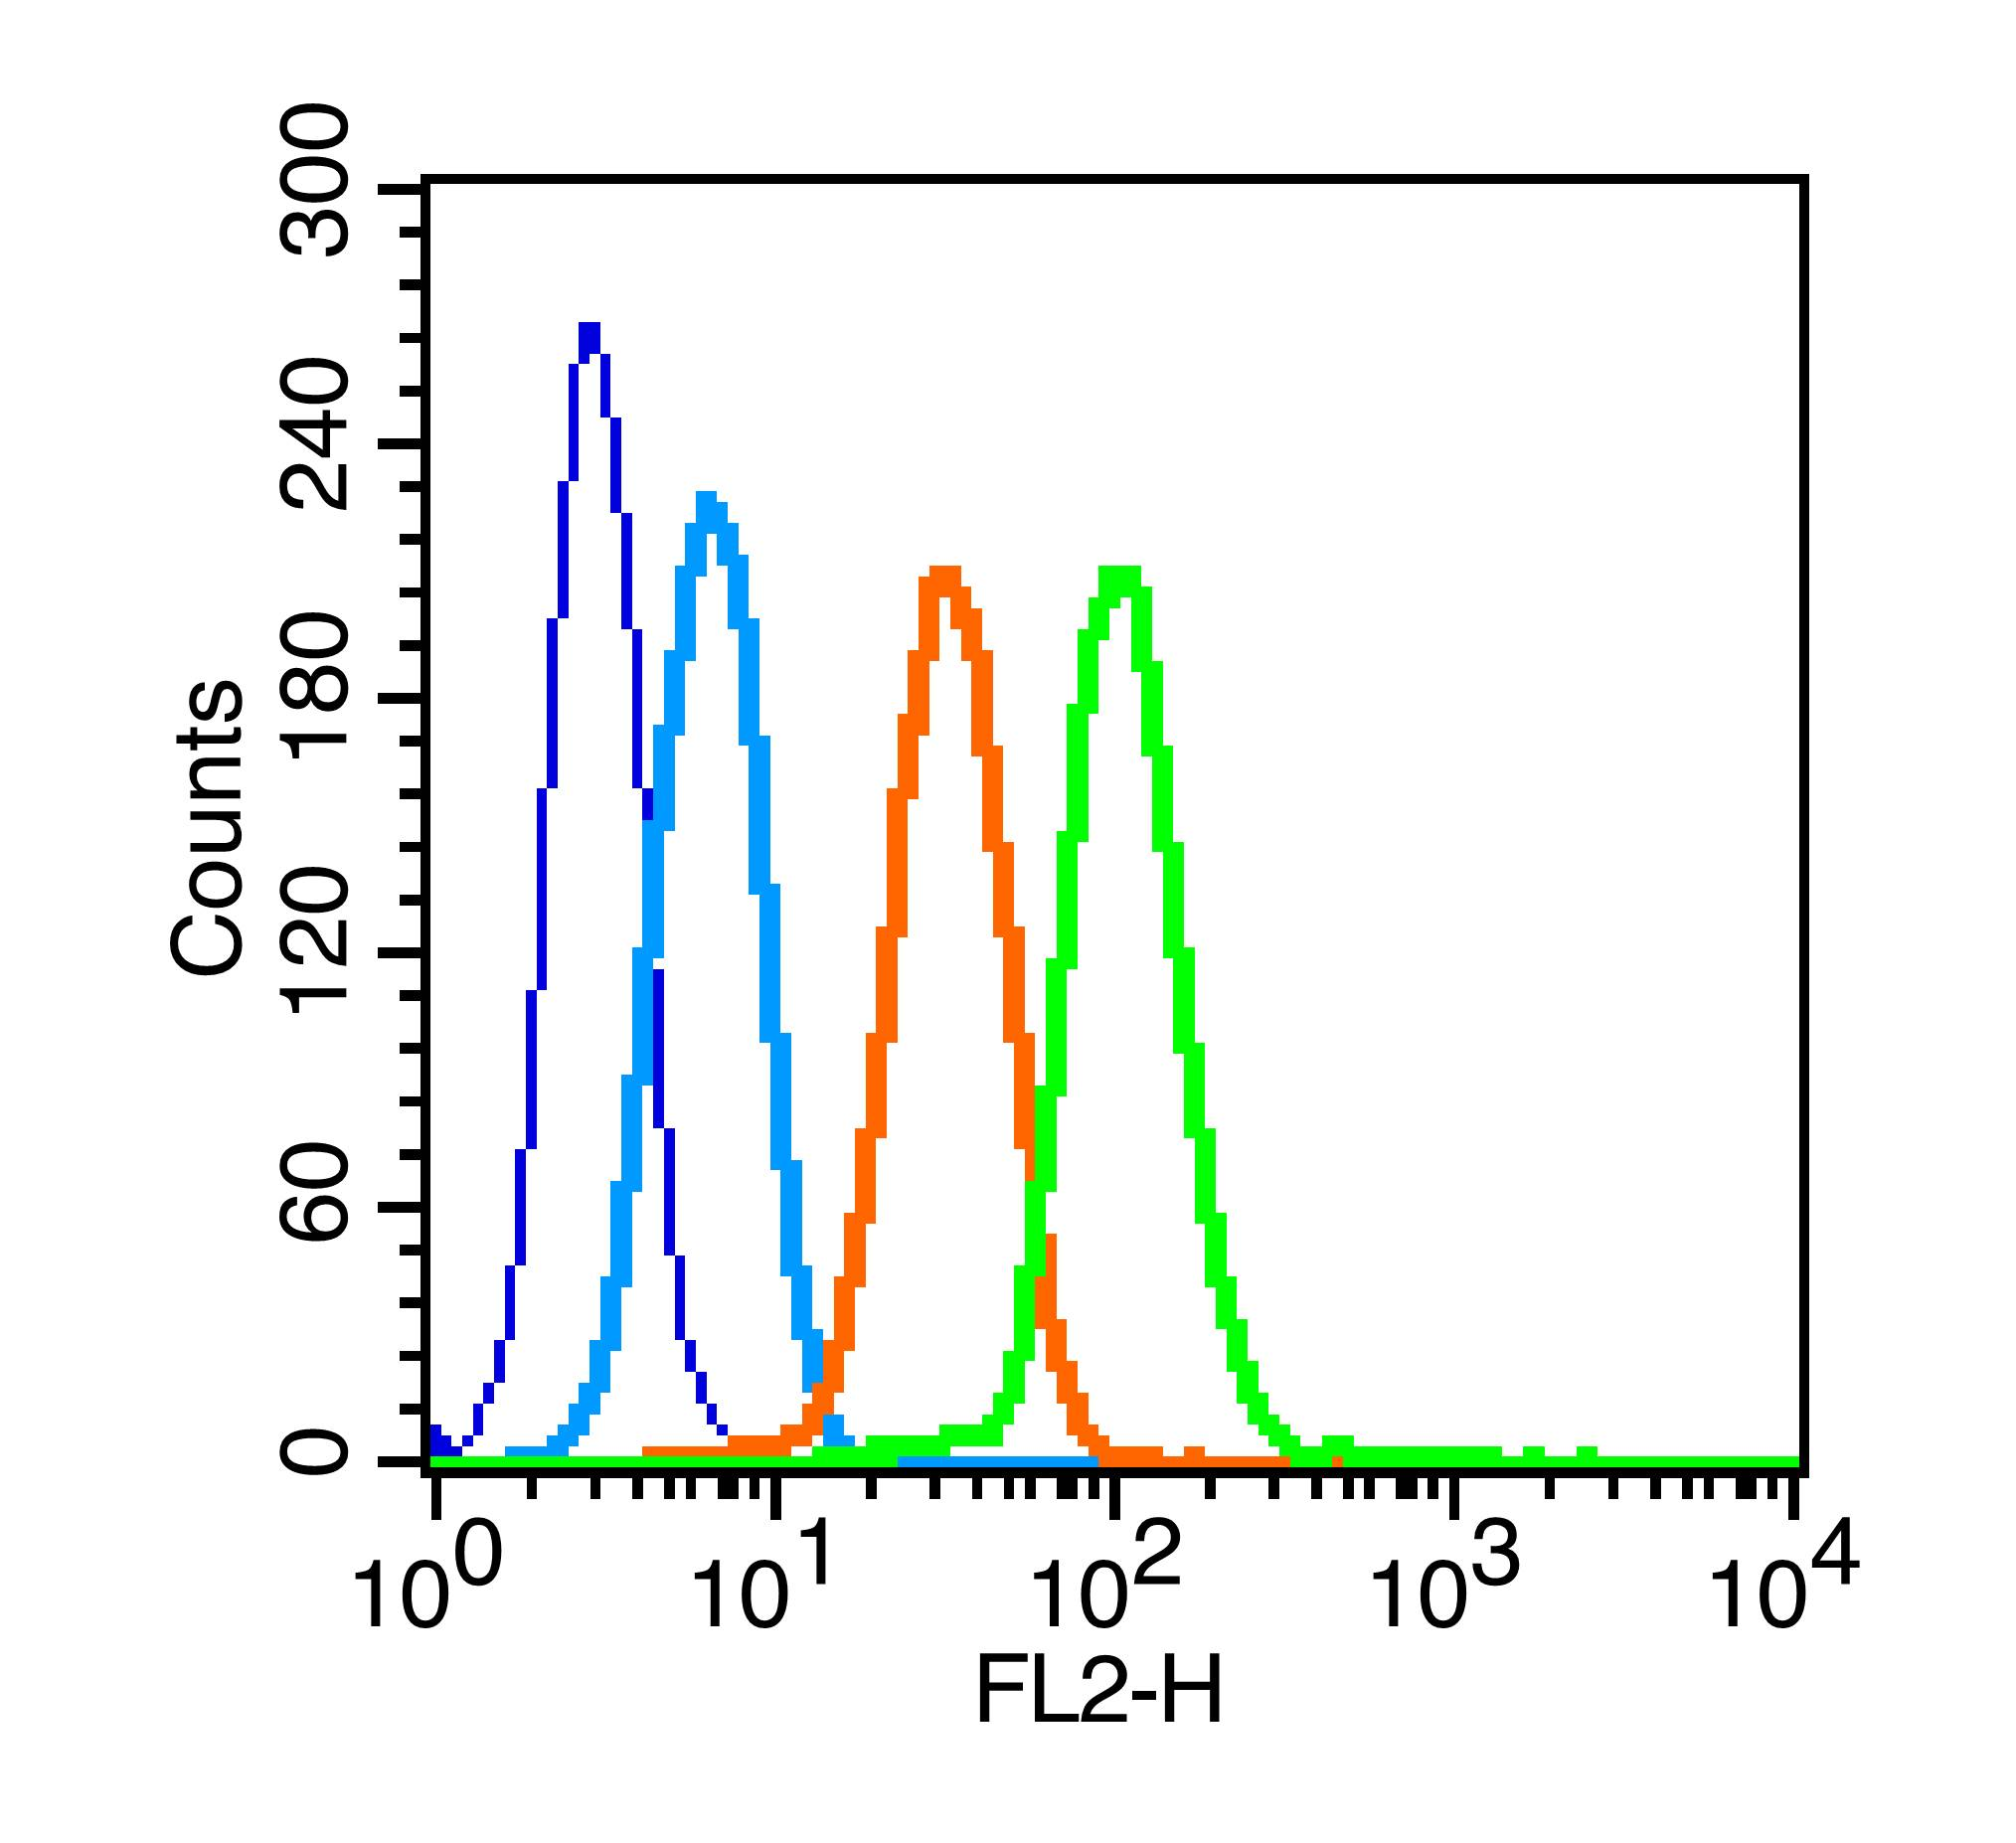 K562 cells probed with GLUT4 Polyclonal Antibody, unconjugated (bs-0384R) at 1:100 dilution for 30 minutes compared to control cells (blue) and isotype control (orange)